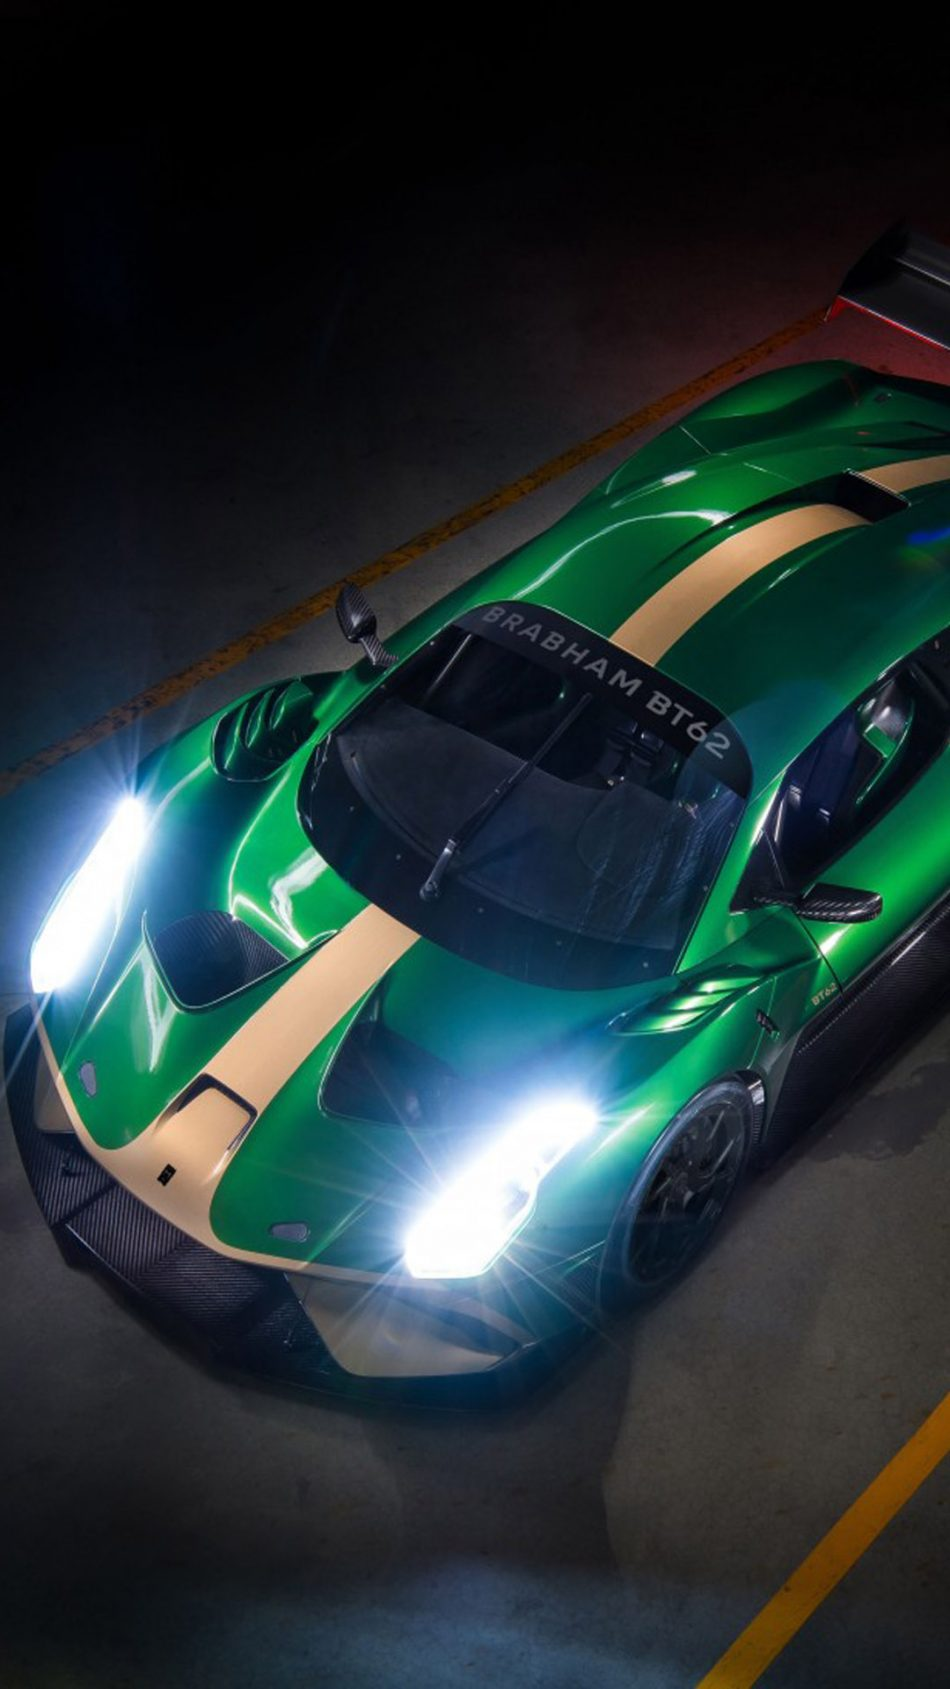 Green Brabham BT62 Supercar HD Mobile Wallpaper HD Mobile Wallpaper